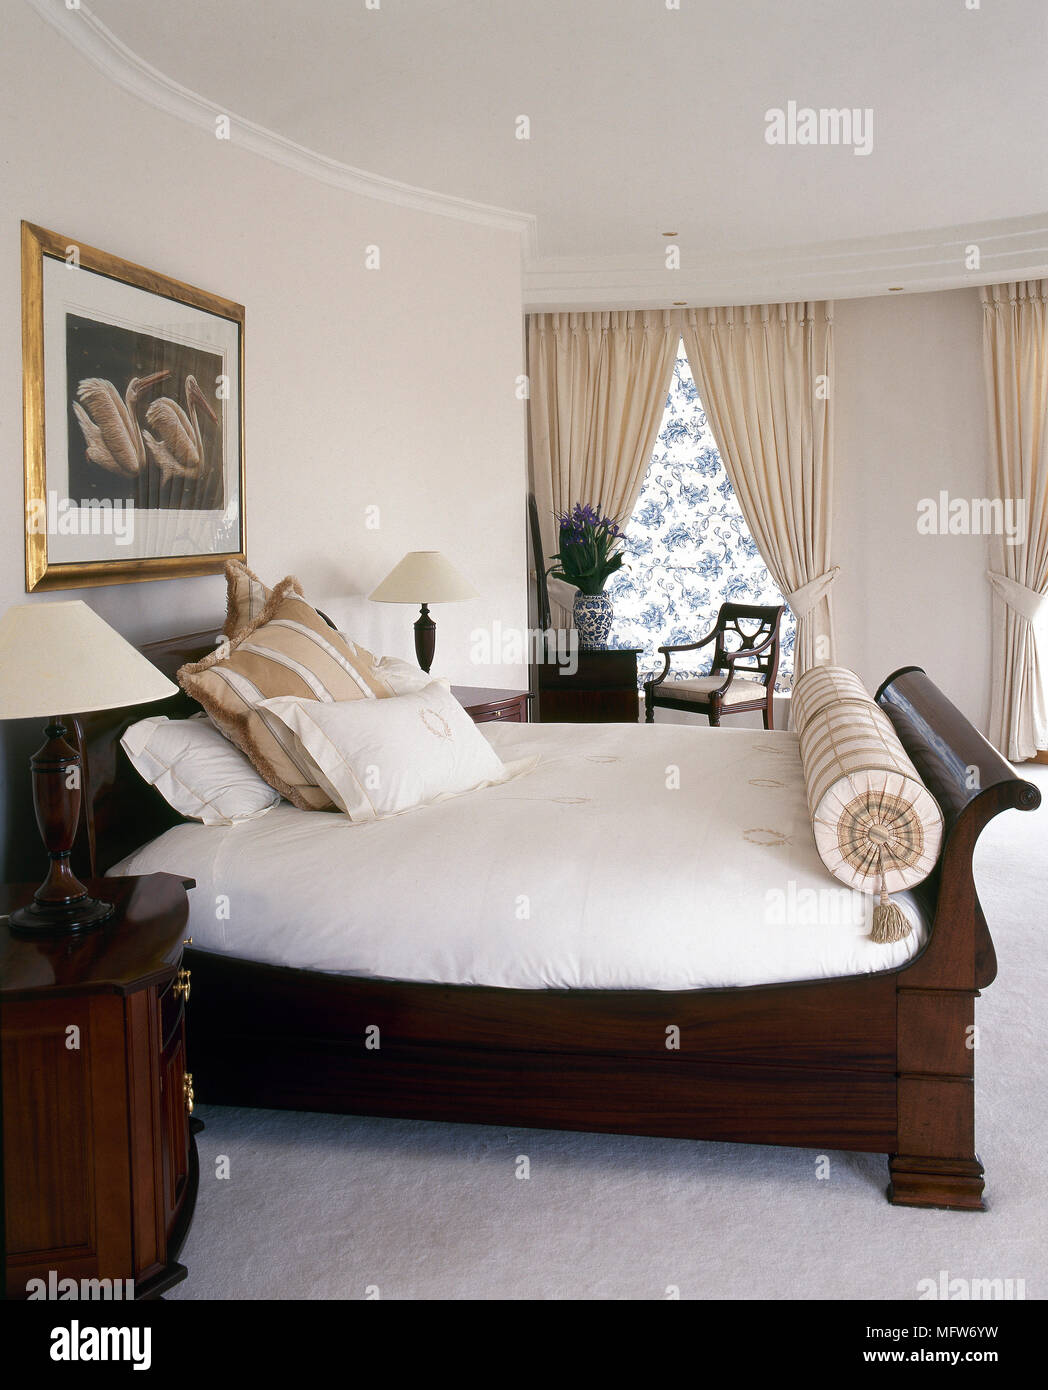 - Traditional, Neutral Bedroom With A Wood Sleigh Bed, White Bedding